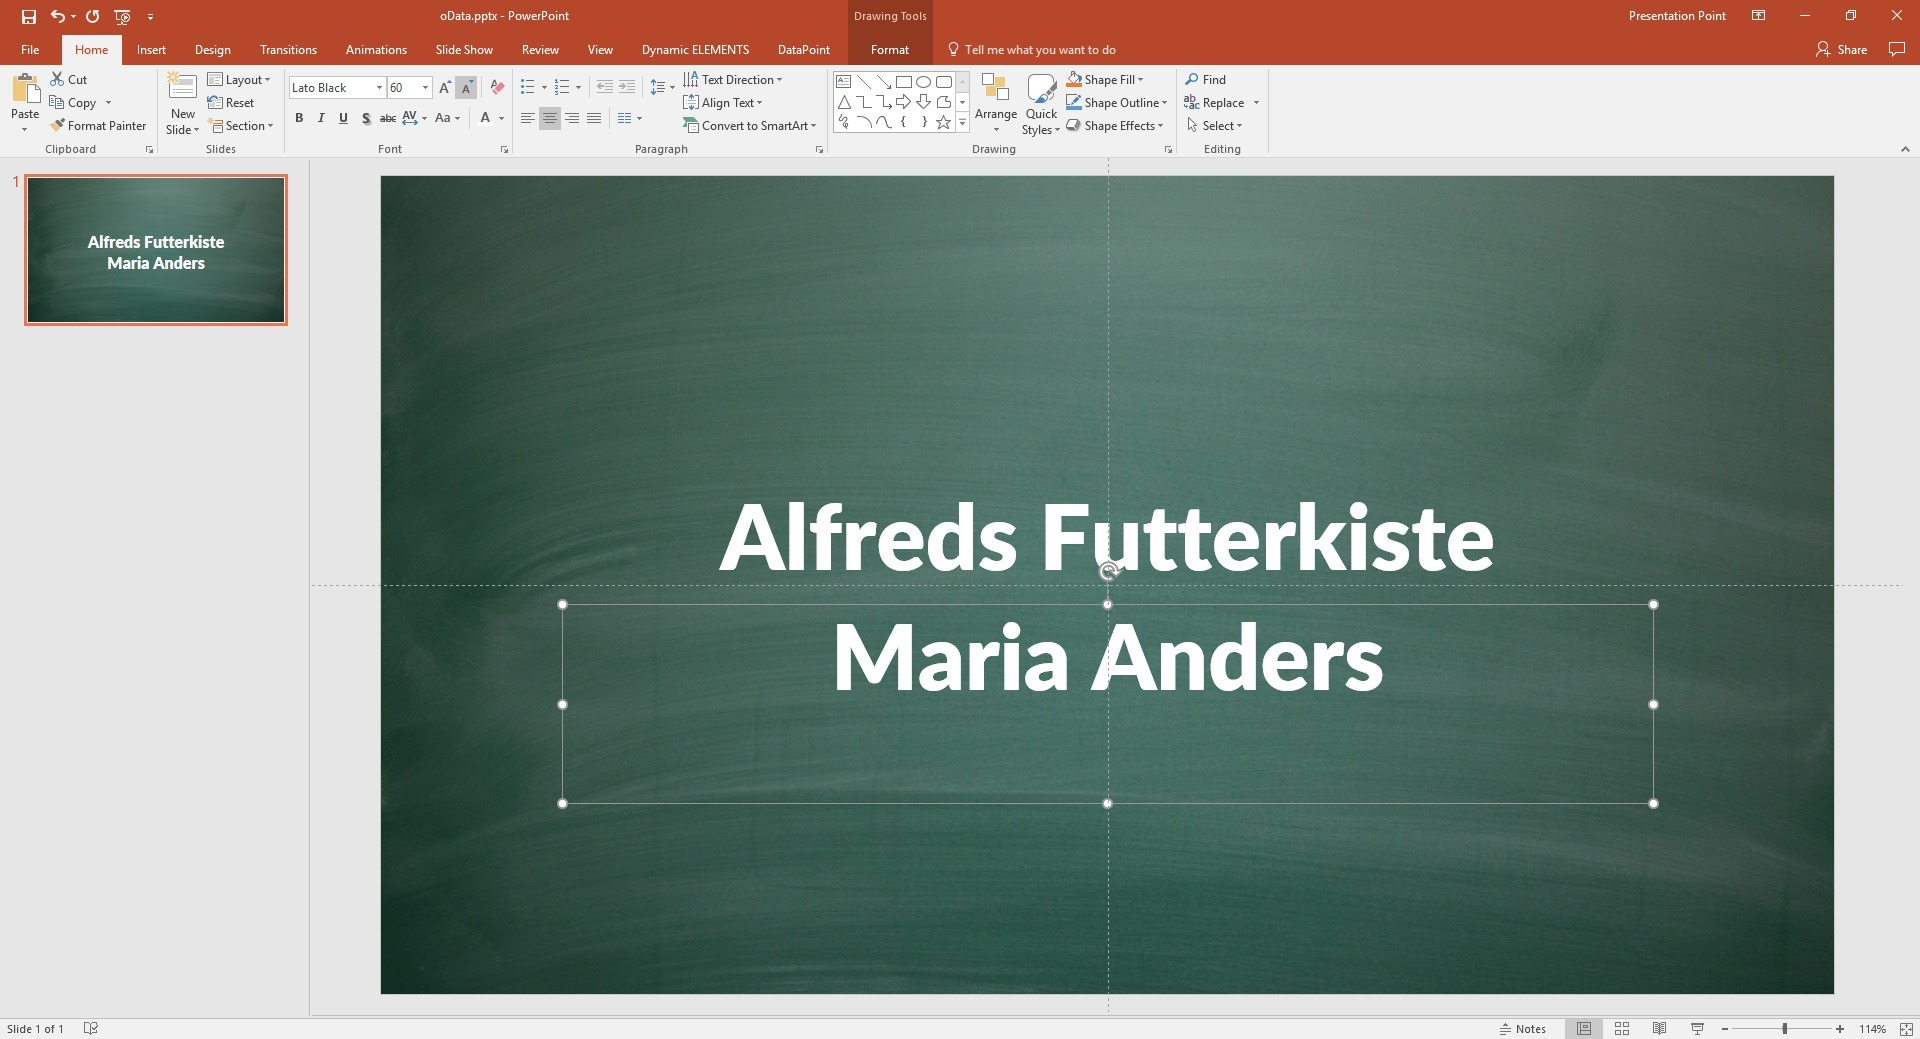 powerpoint slide with linked odata information